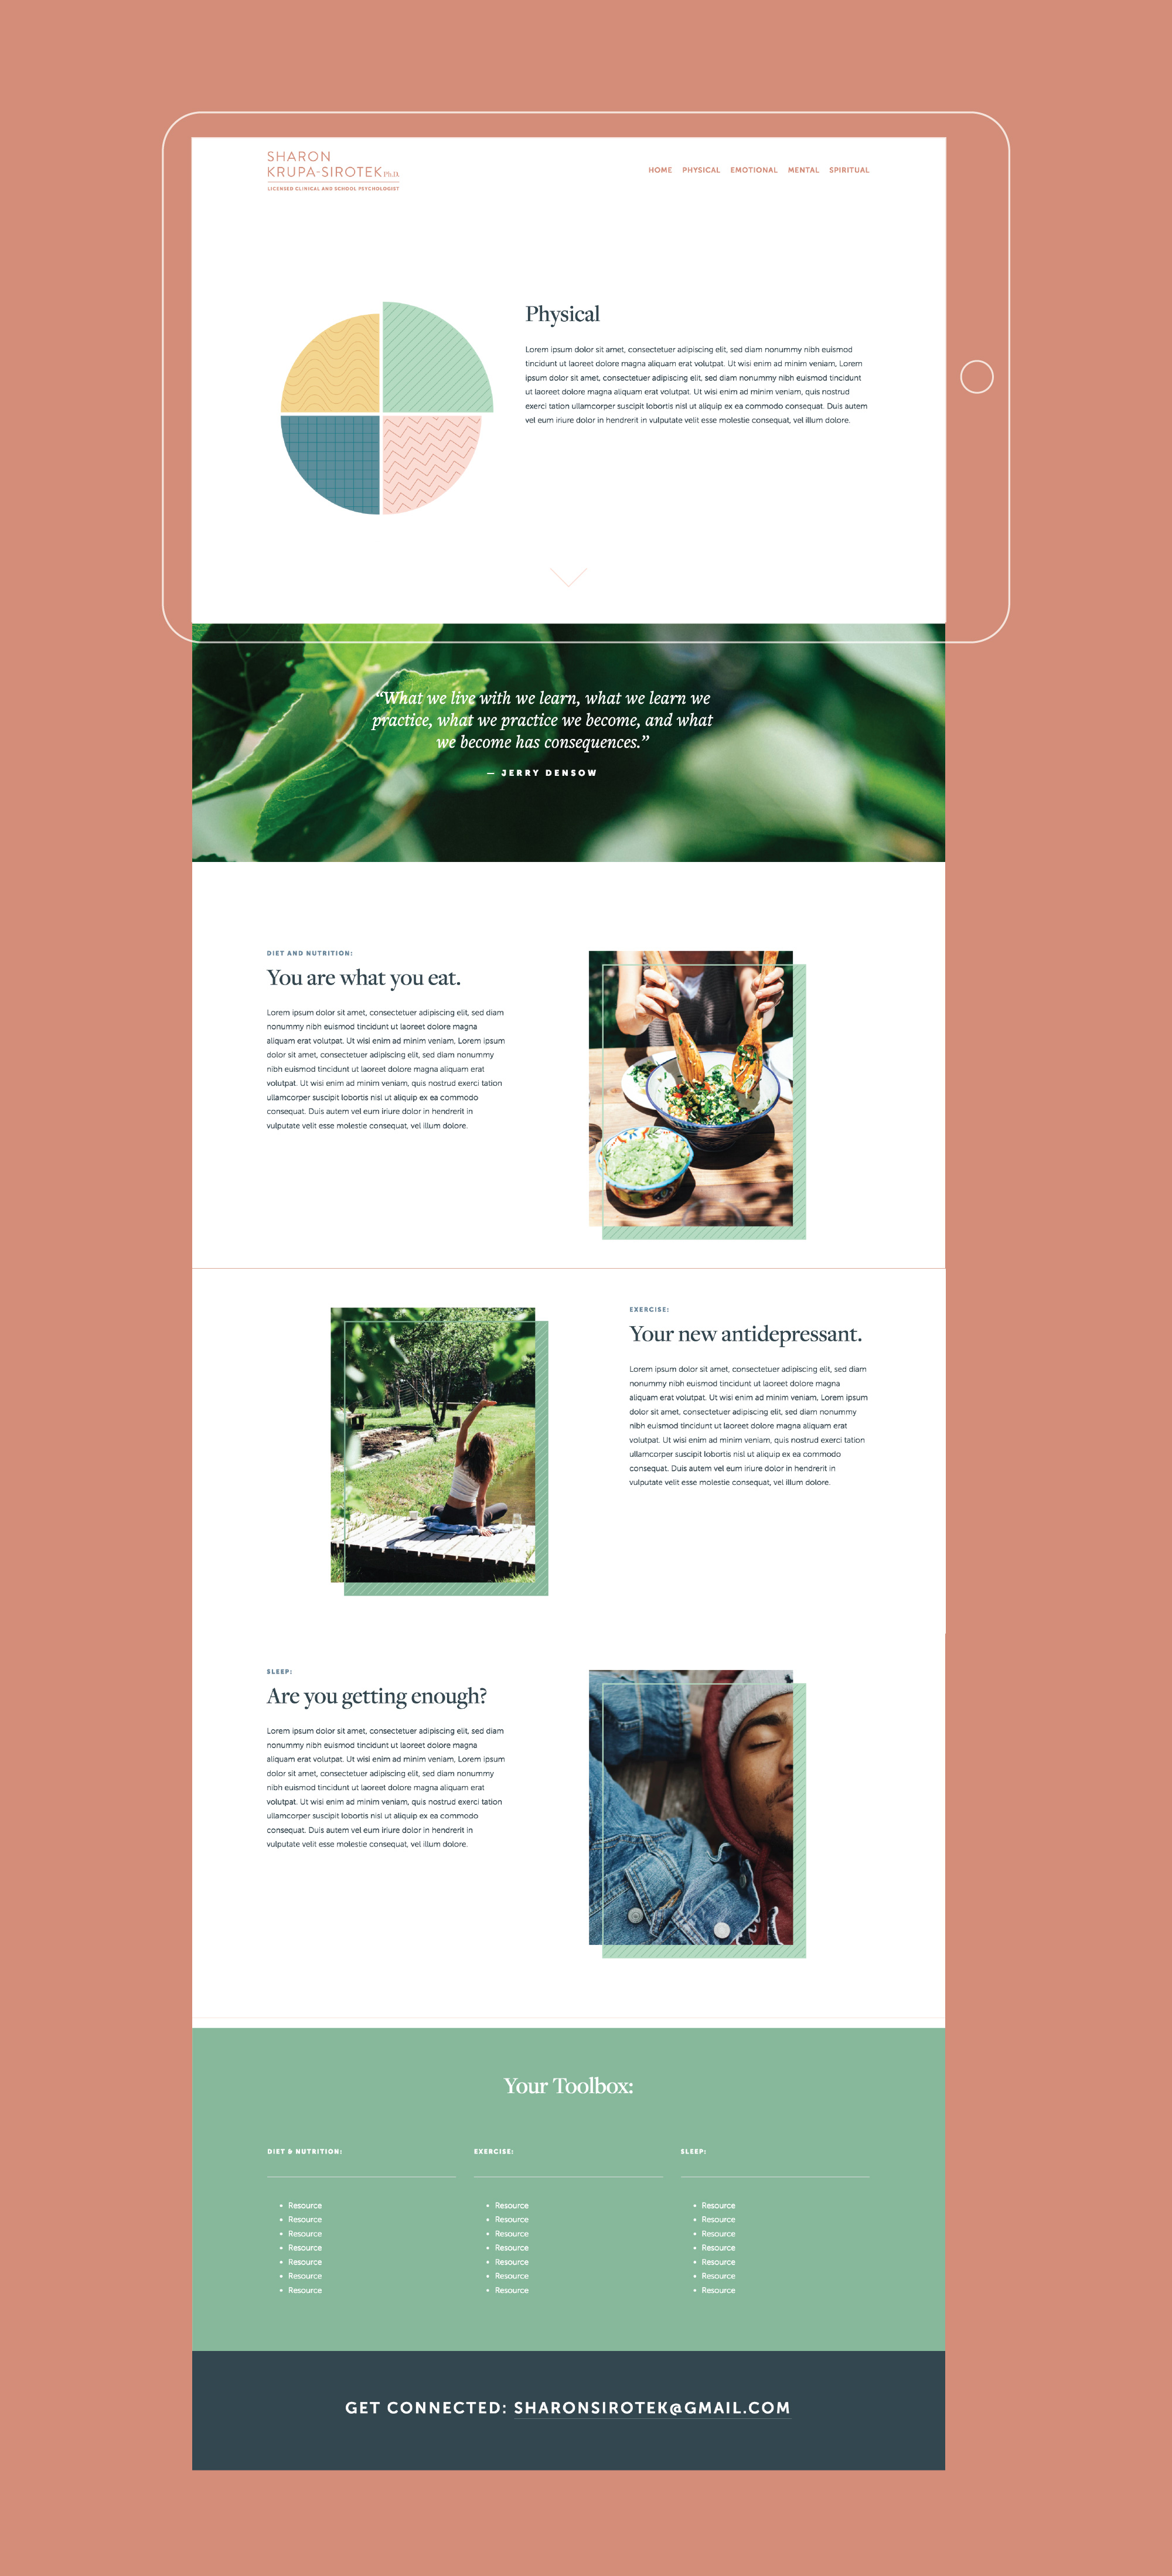 One of the pages of the website we designed for Sharon Krupa-Sirotek, a licensed clinical and school psychologist